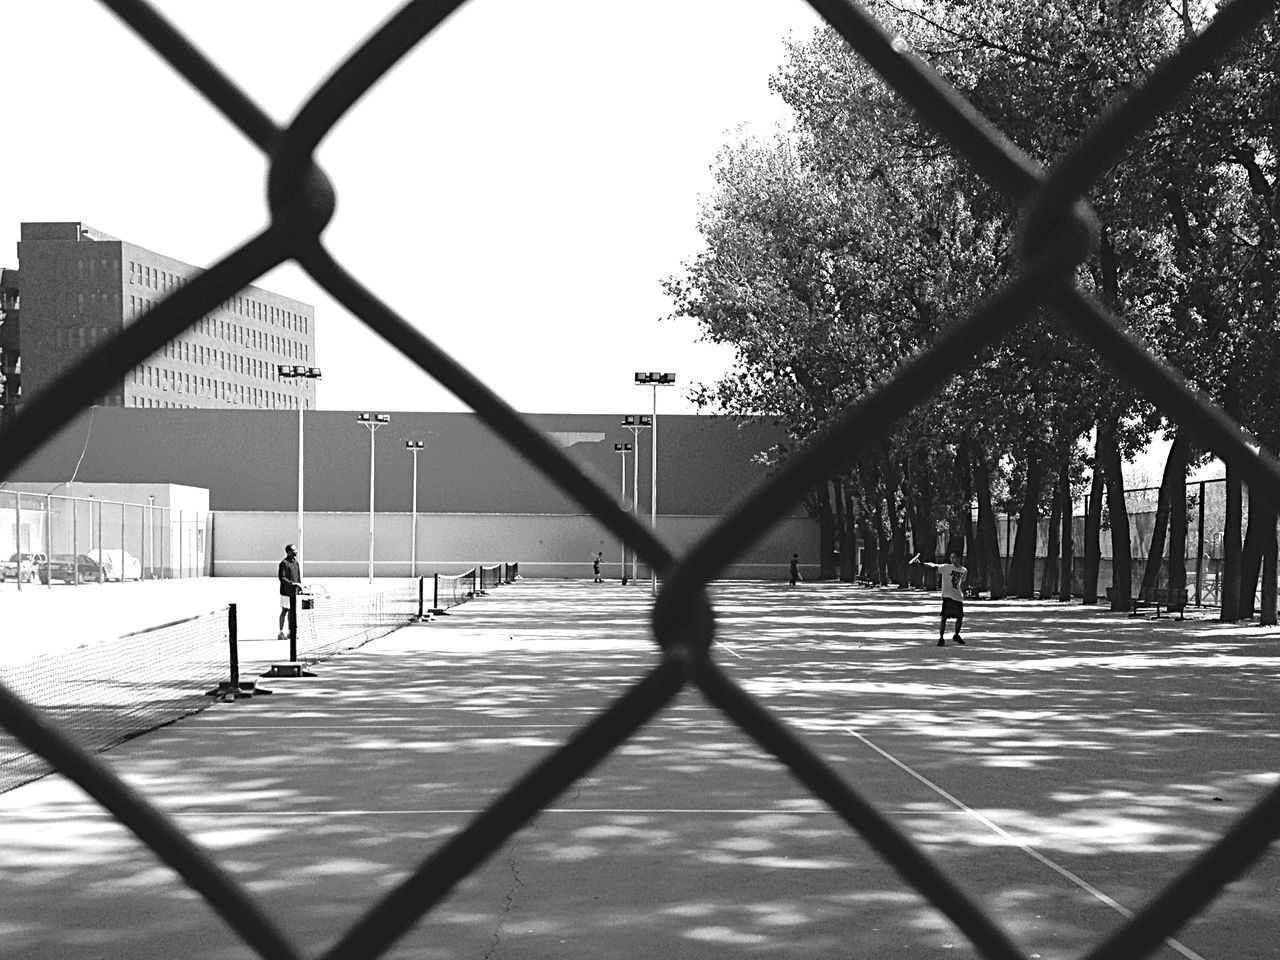 Mans Tennis Practice Streetphotography Popular Photos Taking Photos Young People Black And White